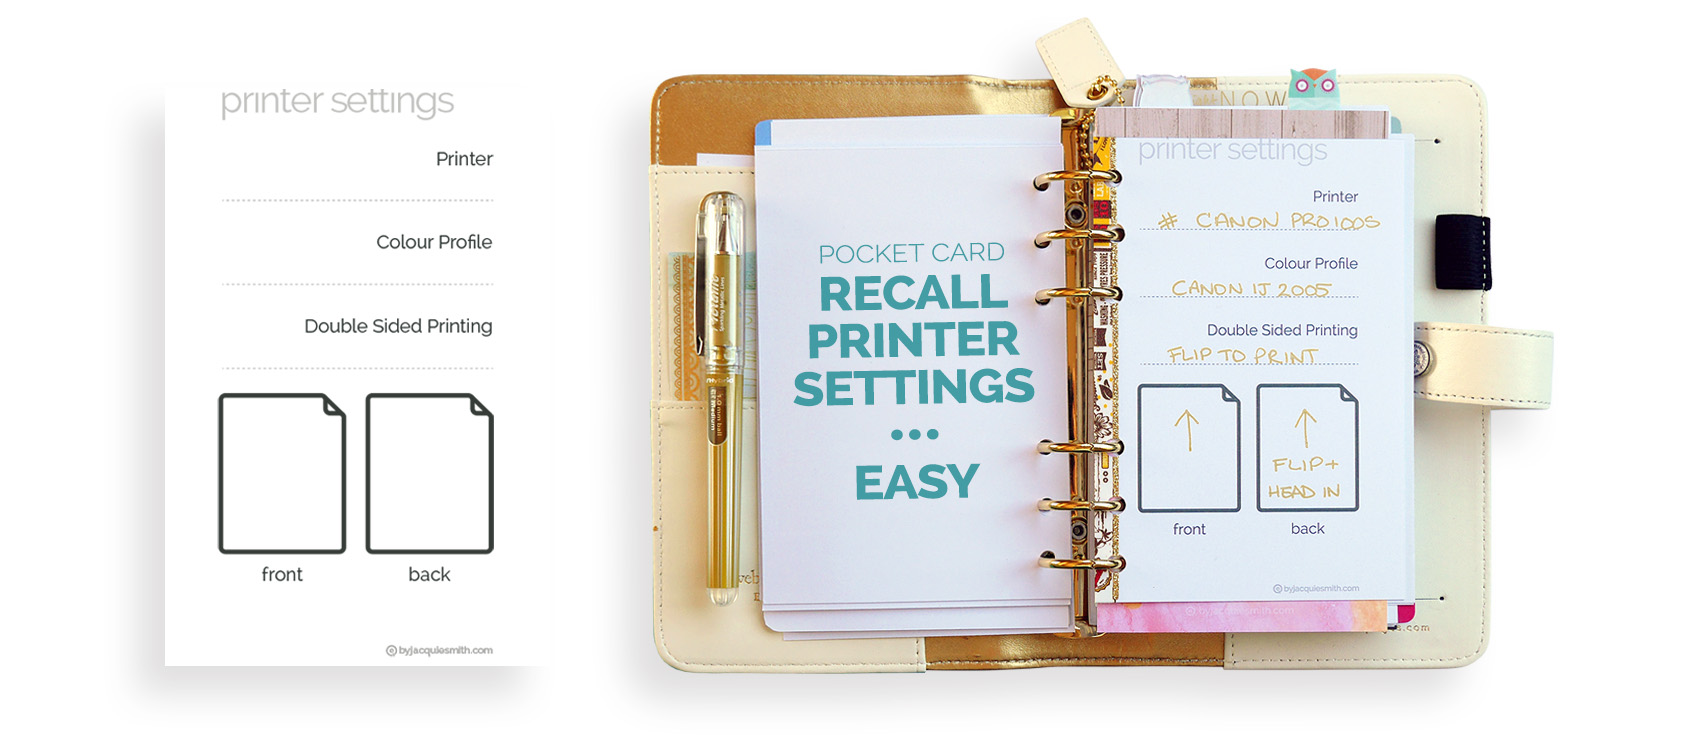 Remember print settings with a planner pocket card at byjacquiesmith.com